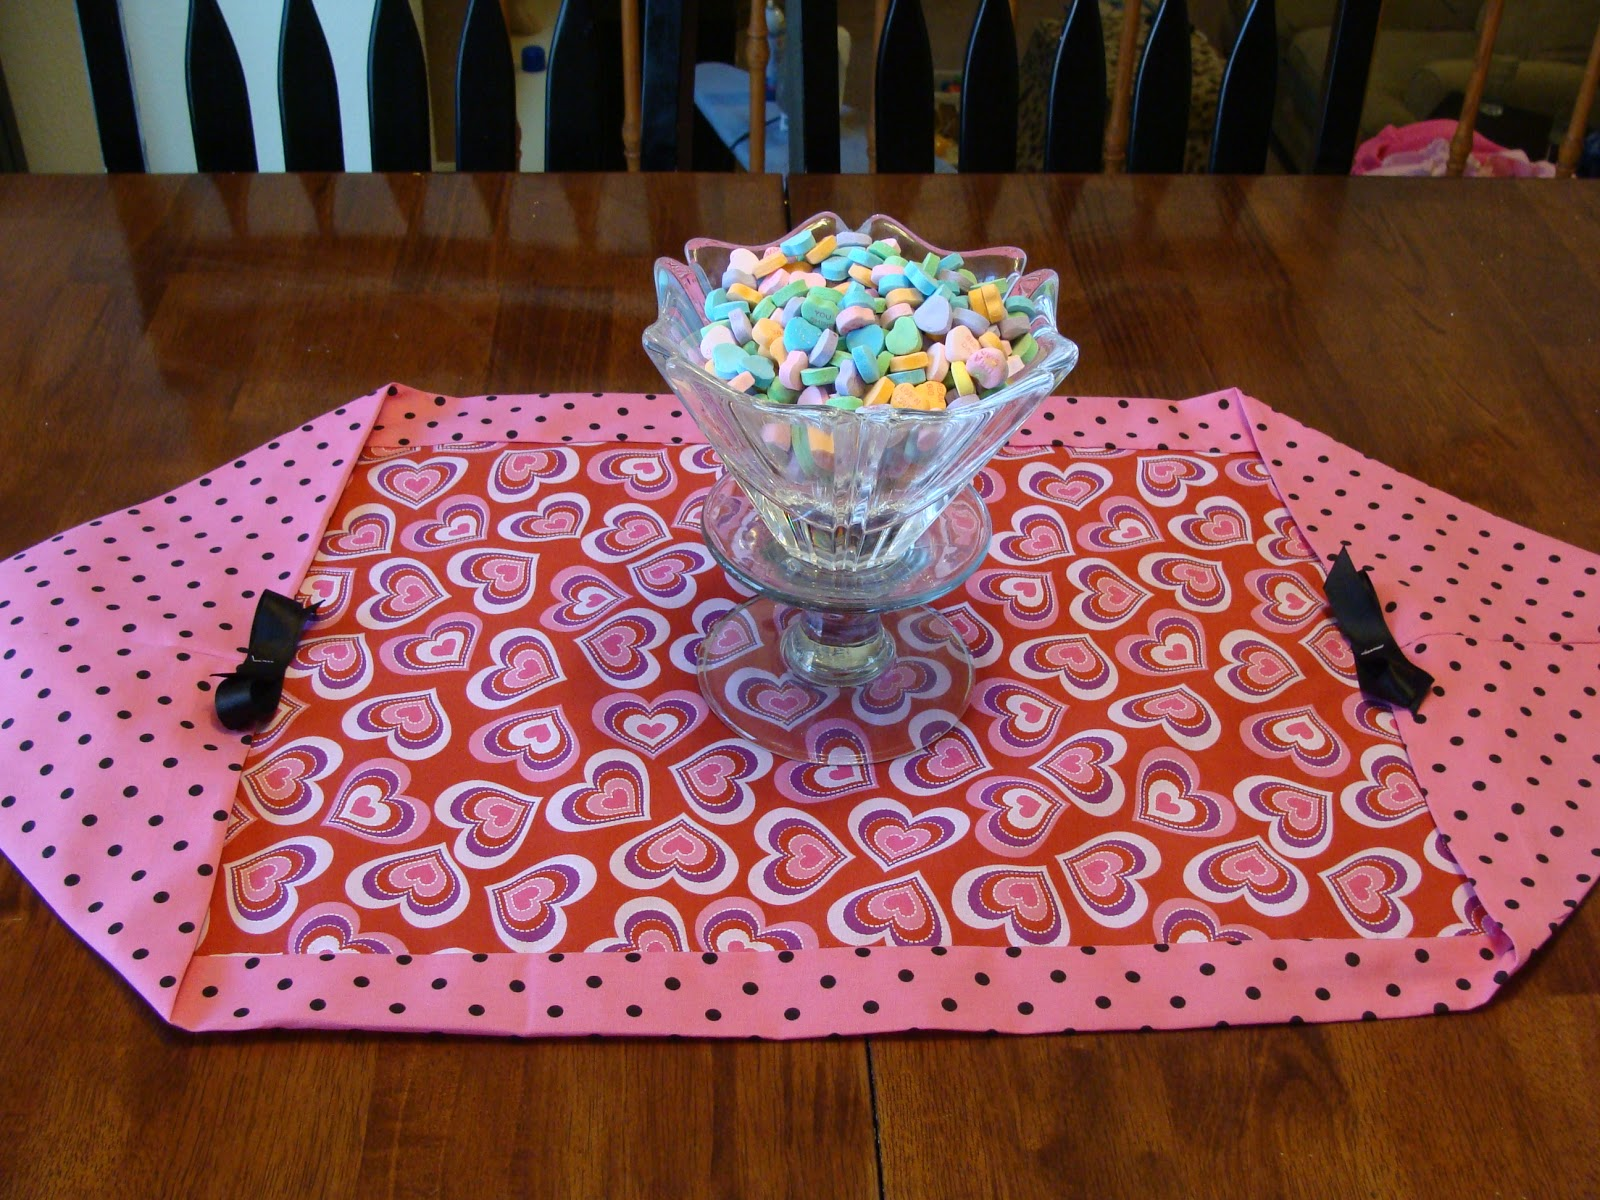 Striving for elegance 14 days of valentines day 8 10 for 10 minute table runner directions